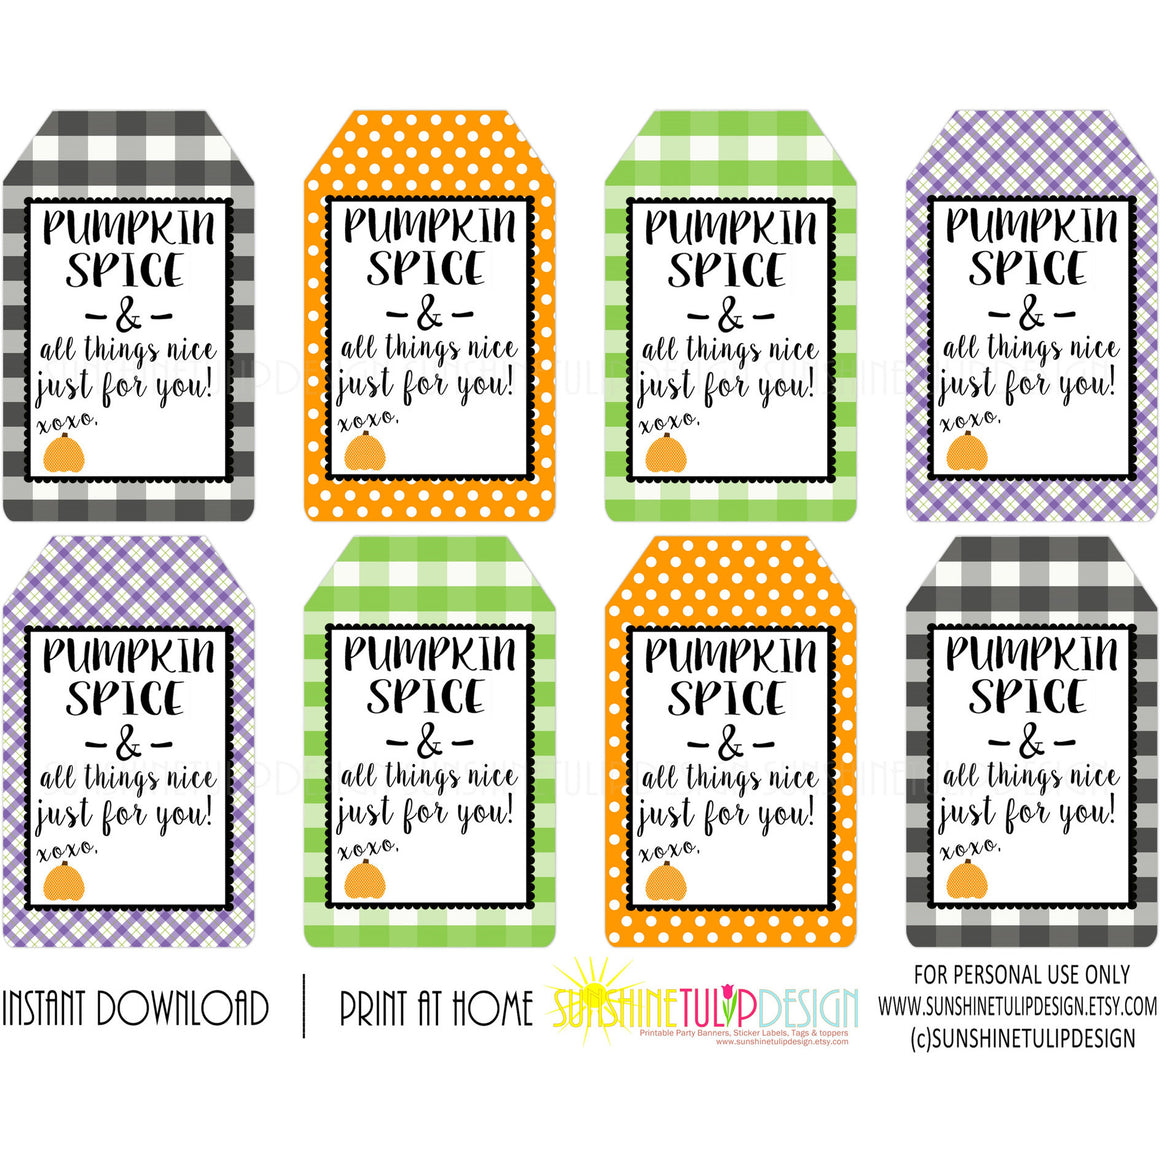 photo relating to Free Printable Teacher Appreciation Tags identified as Pumpkin Spice Just about anything Good Tags, Printable Instructor Appreciation HALLOWEEN tags, Pumpkin Spice Present Tags by way of SUNSHINETULIPDESIGN